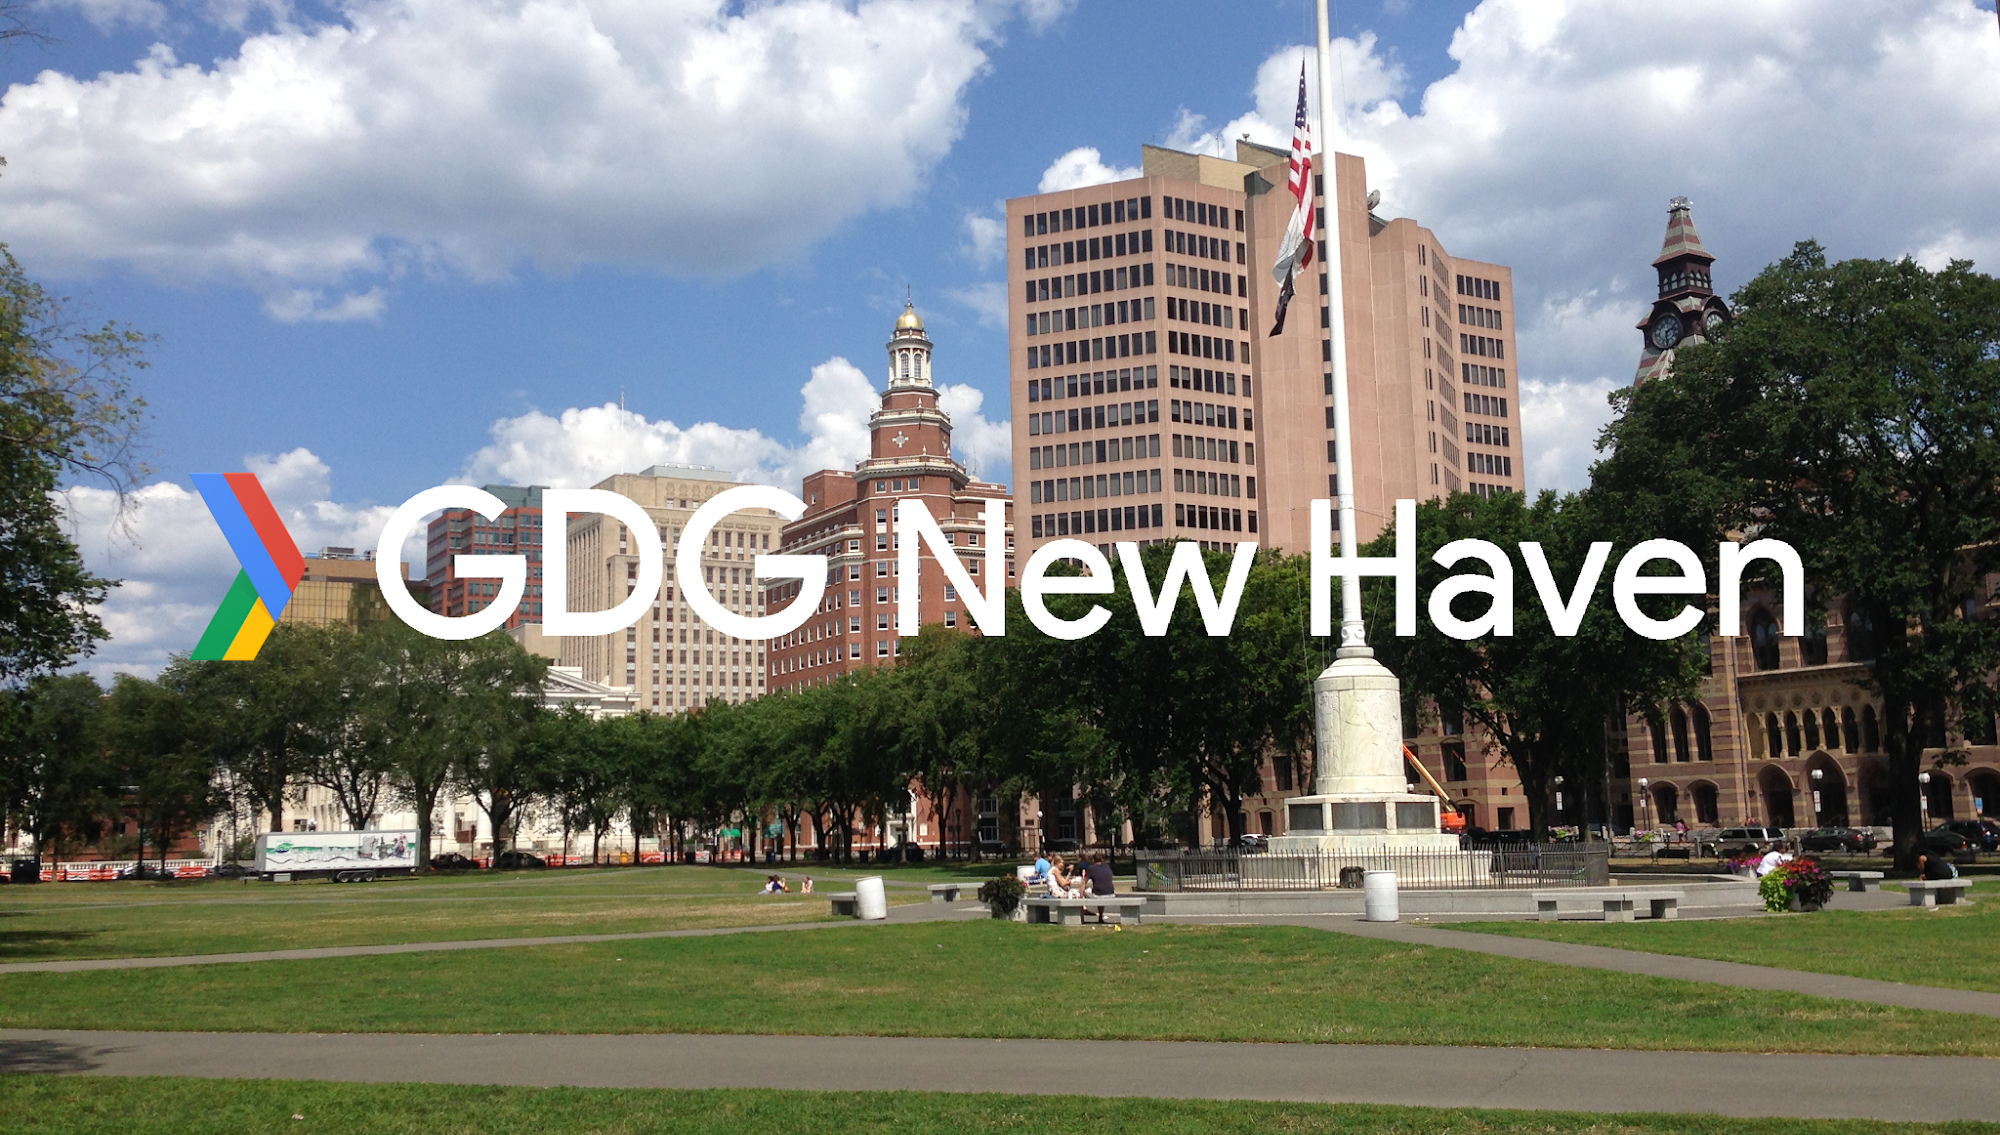 GDG New Haven